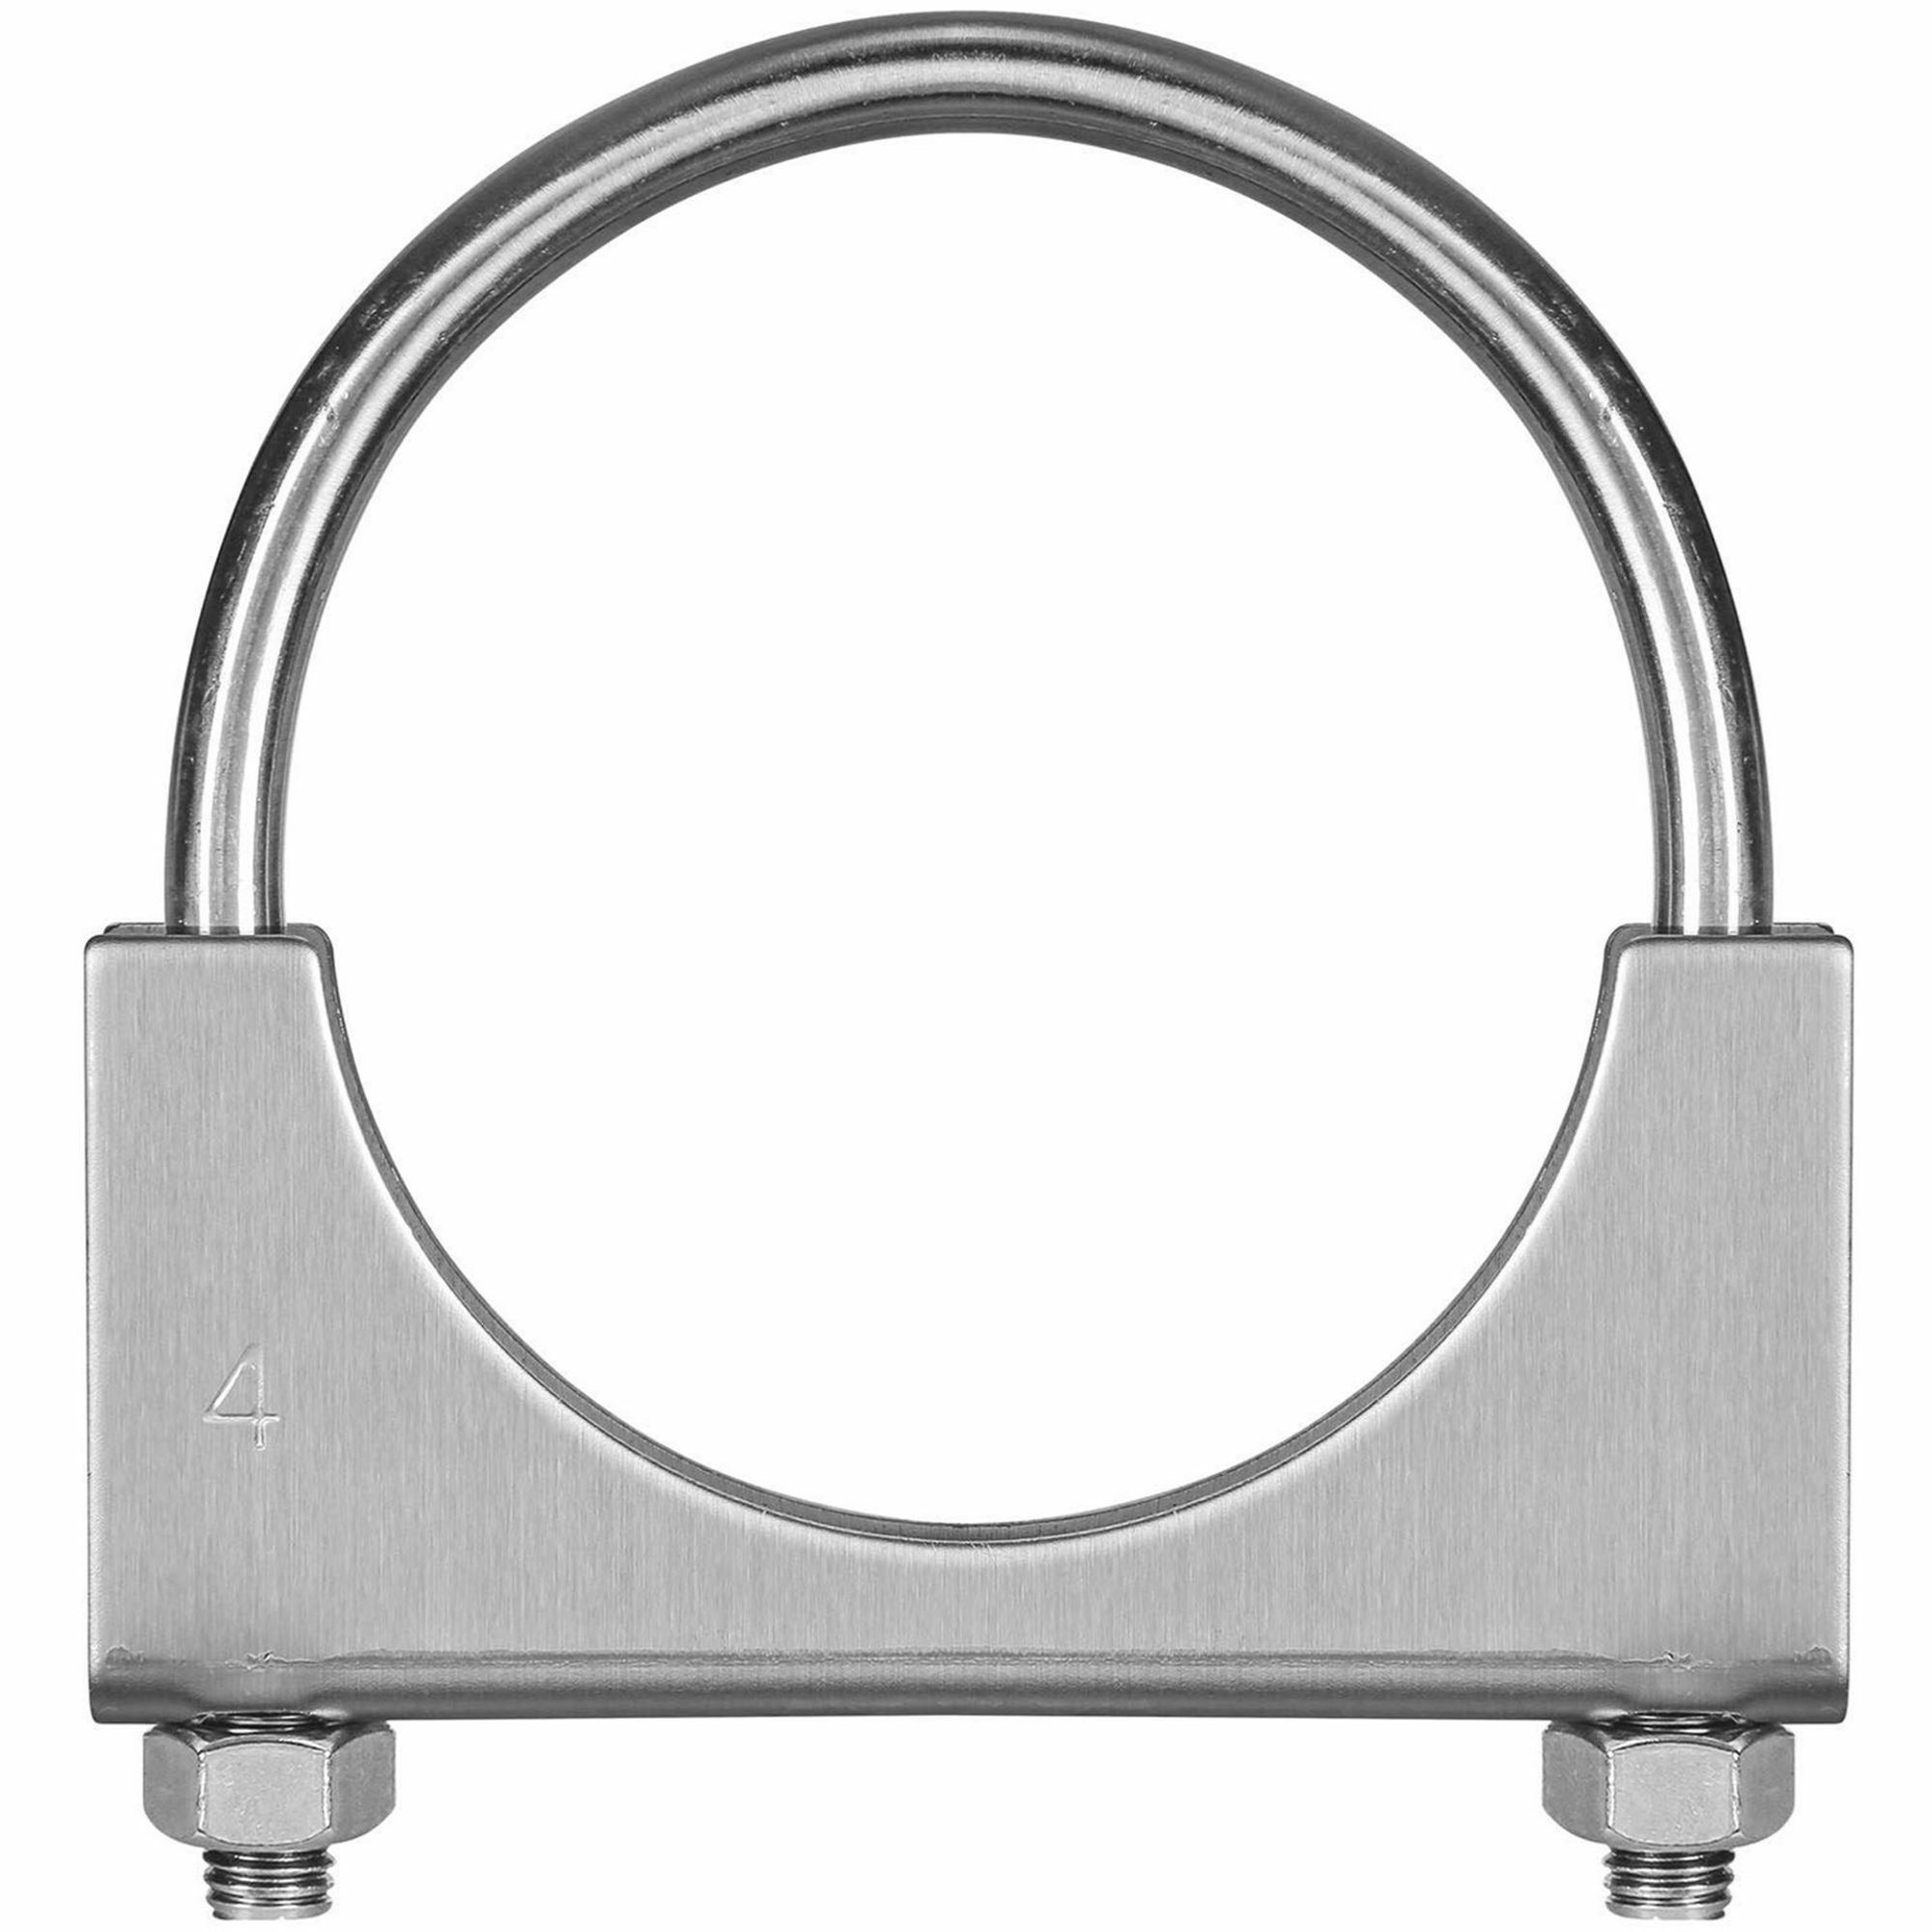 TOTALFLOW TF-U400 U-Bolt | Saddle Exhaust Muffler Clamp Band | 4 Inch